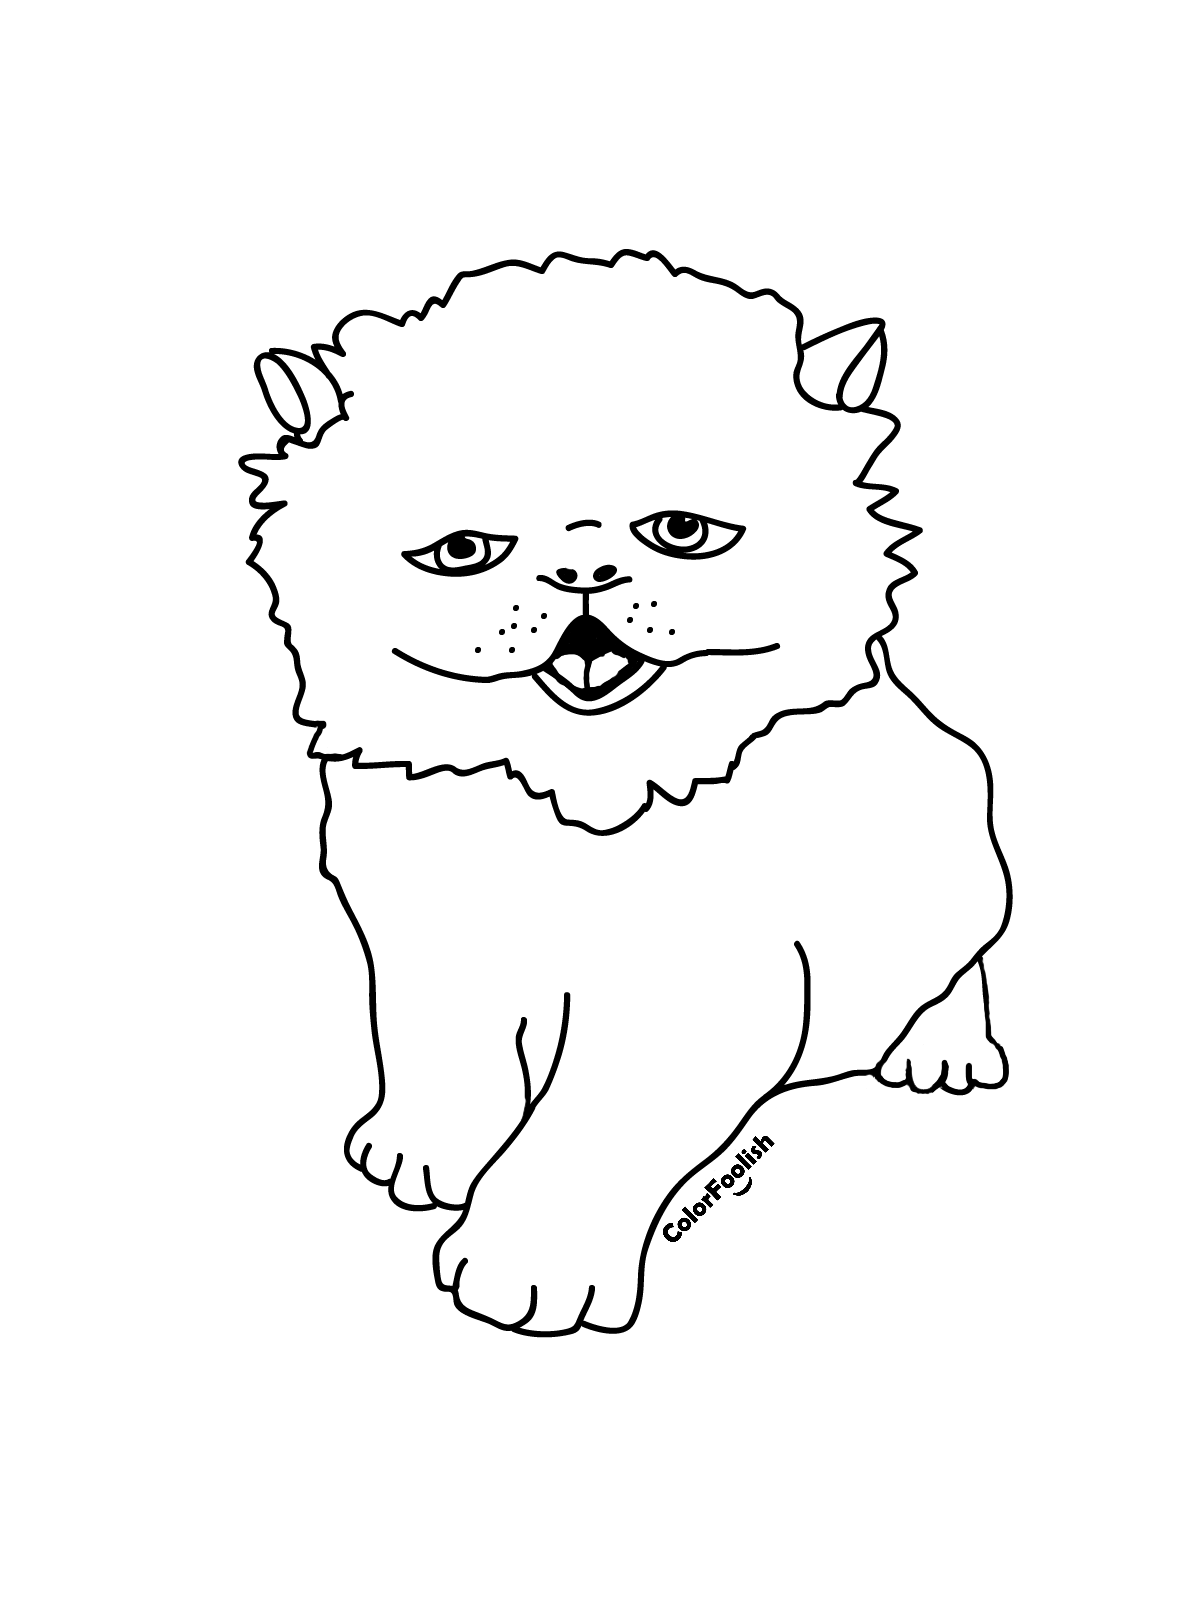 Coloring page of a Persian cat kitten